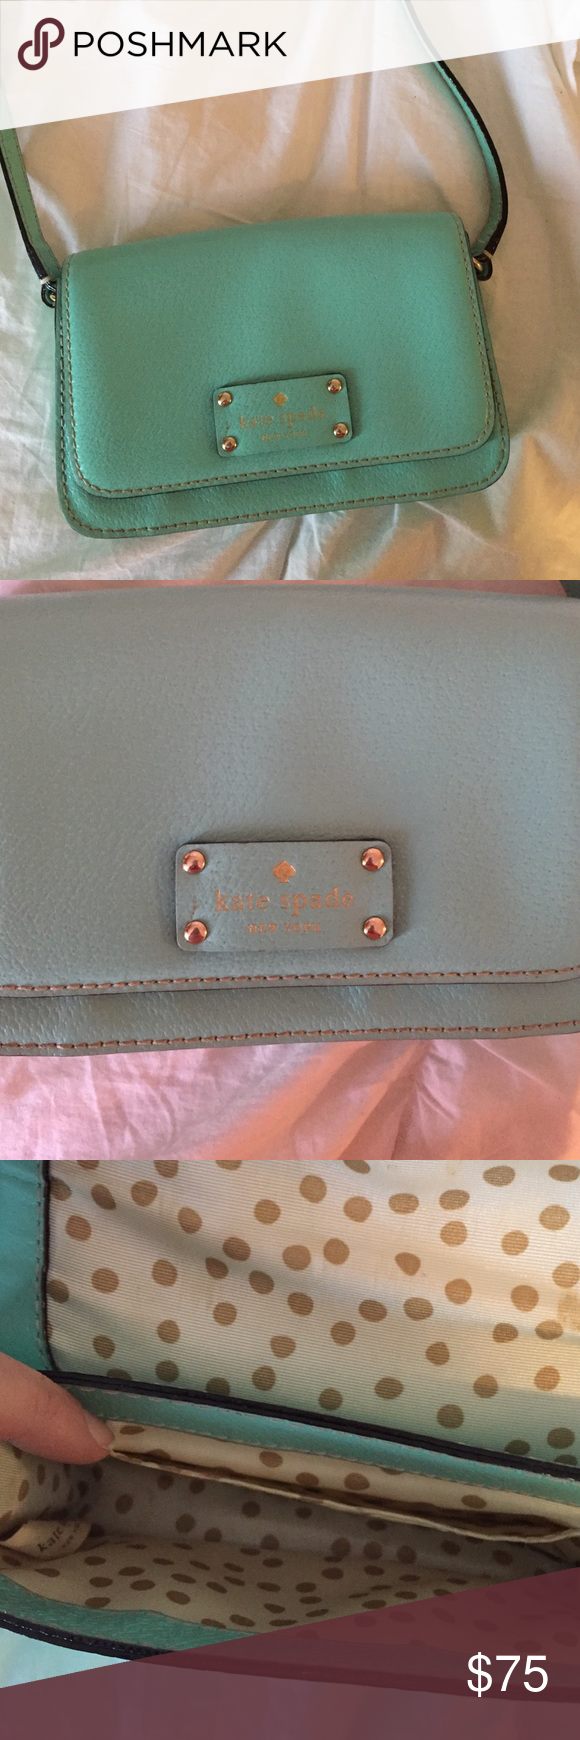 Kate Spade crossbody bag Great condition!! Gently used. Kate Spade dust bag included. Purse is 5 inches long and 7.5 inches wide kate spade Bags Crossbody Bags